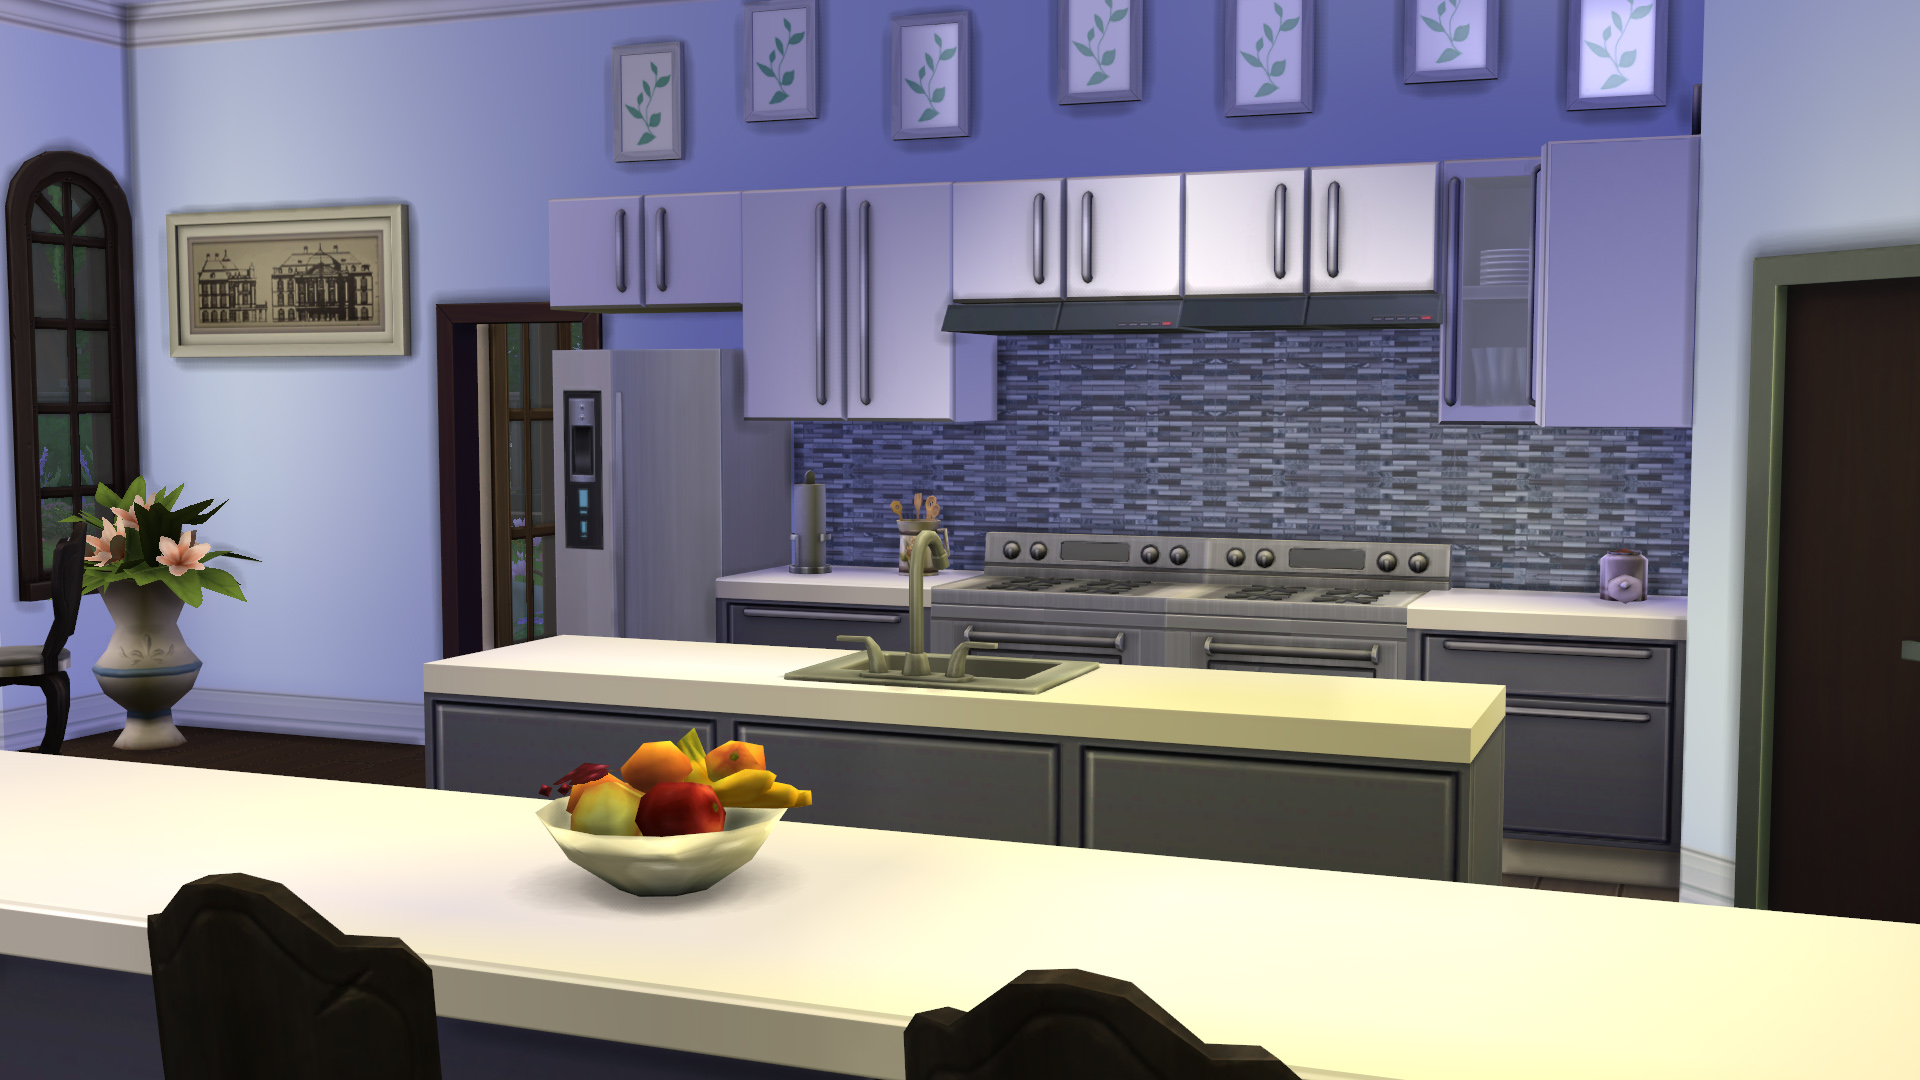 Sims Kitchen Mod The Sims Modern Kitchen Backsplashes